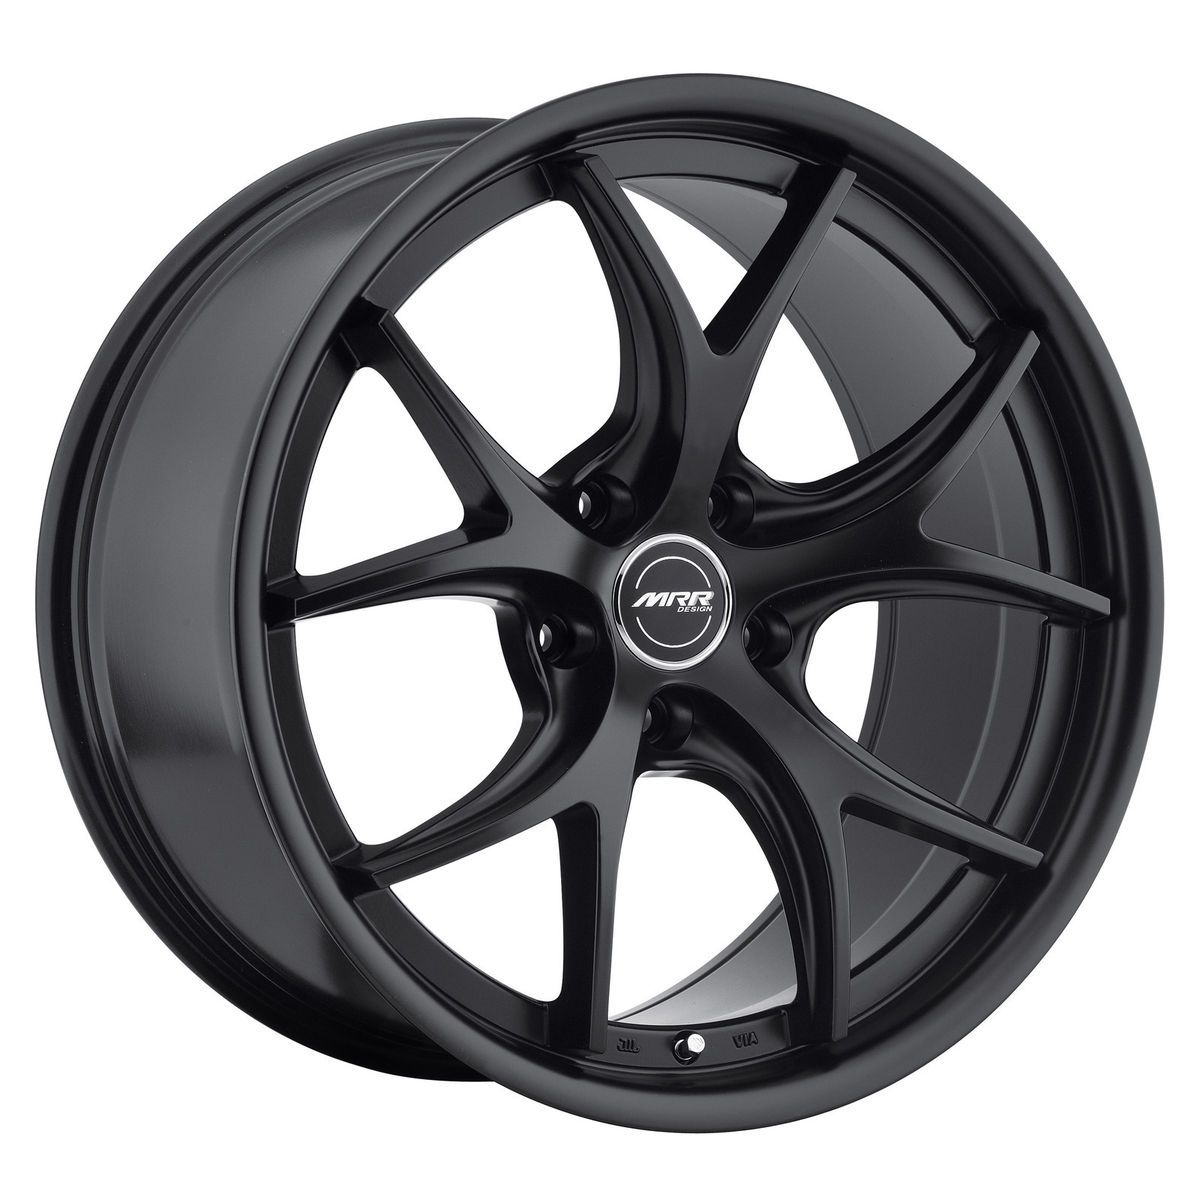 19 MRR GT8 Matte Black Wheels Rims Fit Nissan 350Z 370Z Altima Maxima